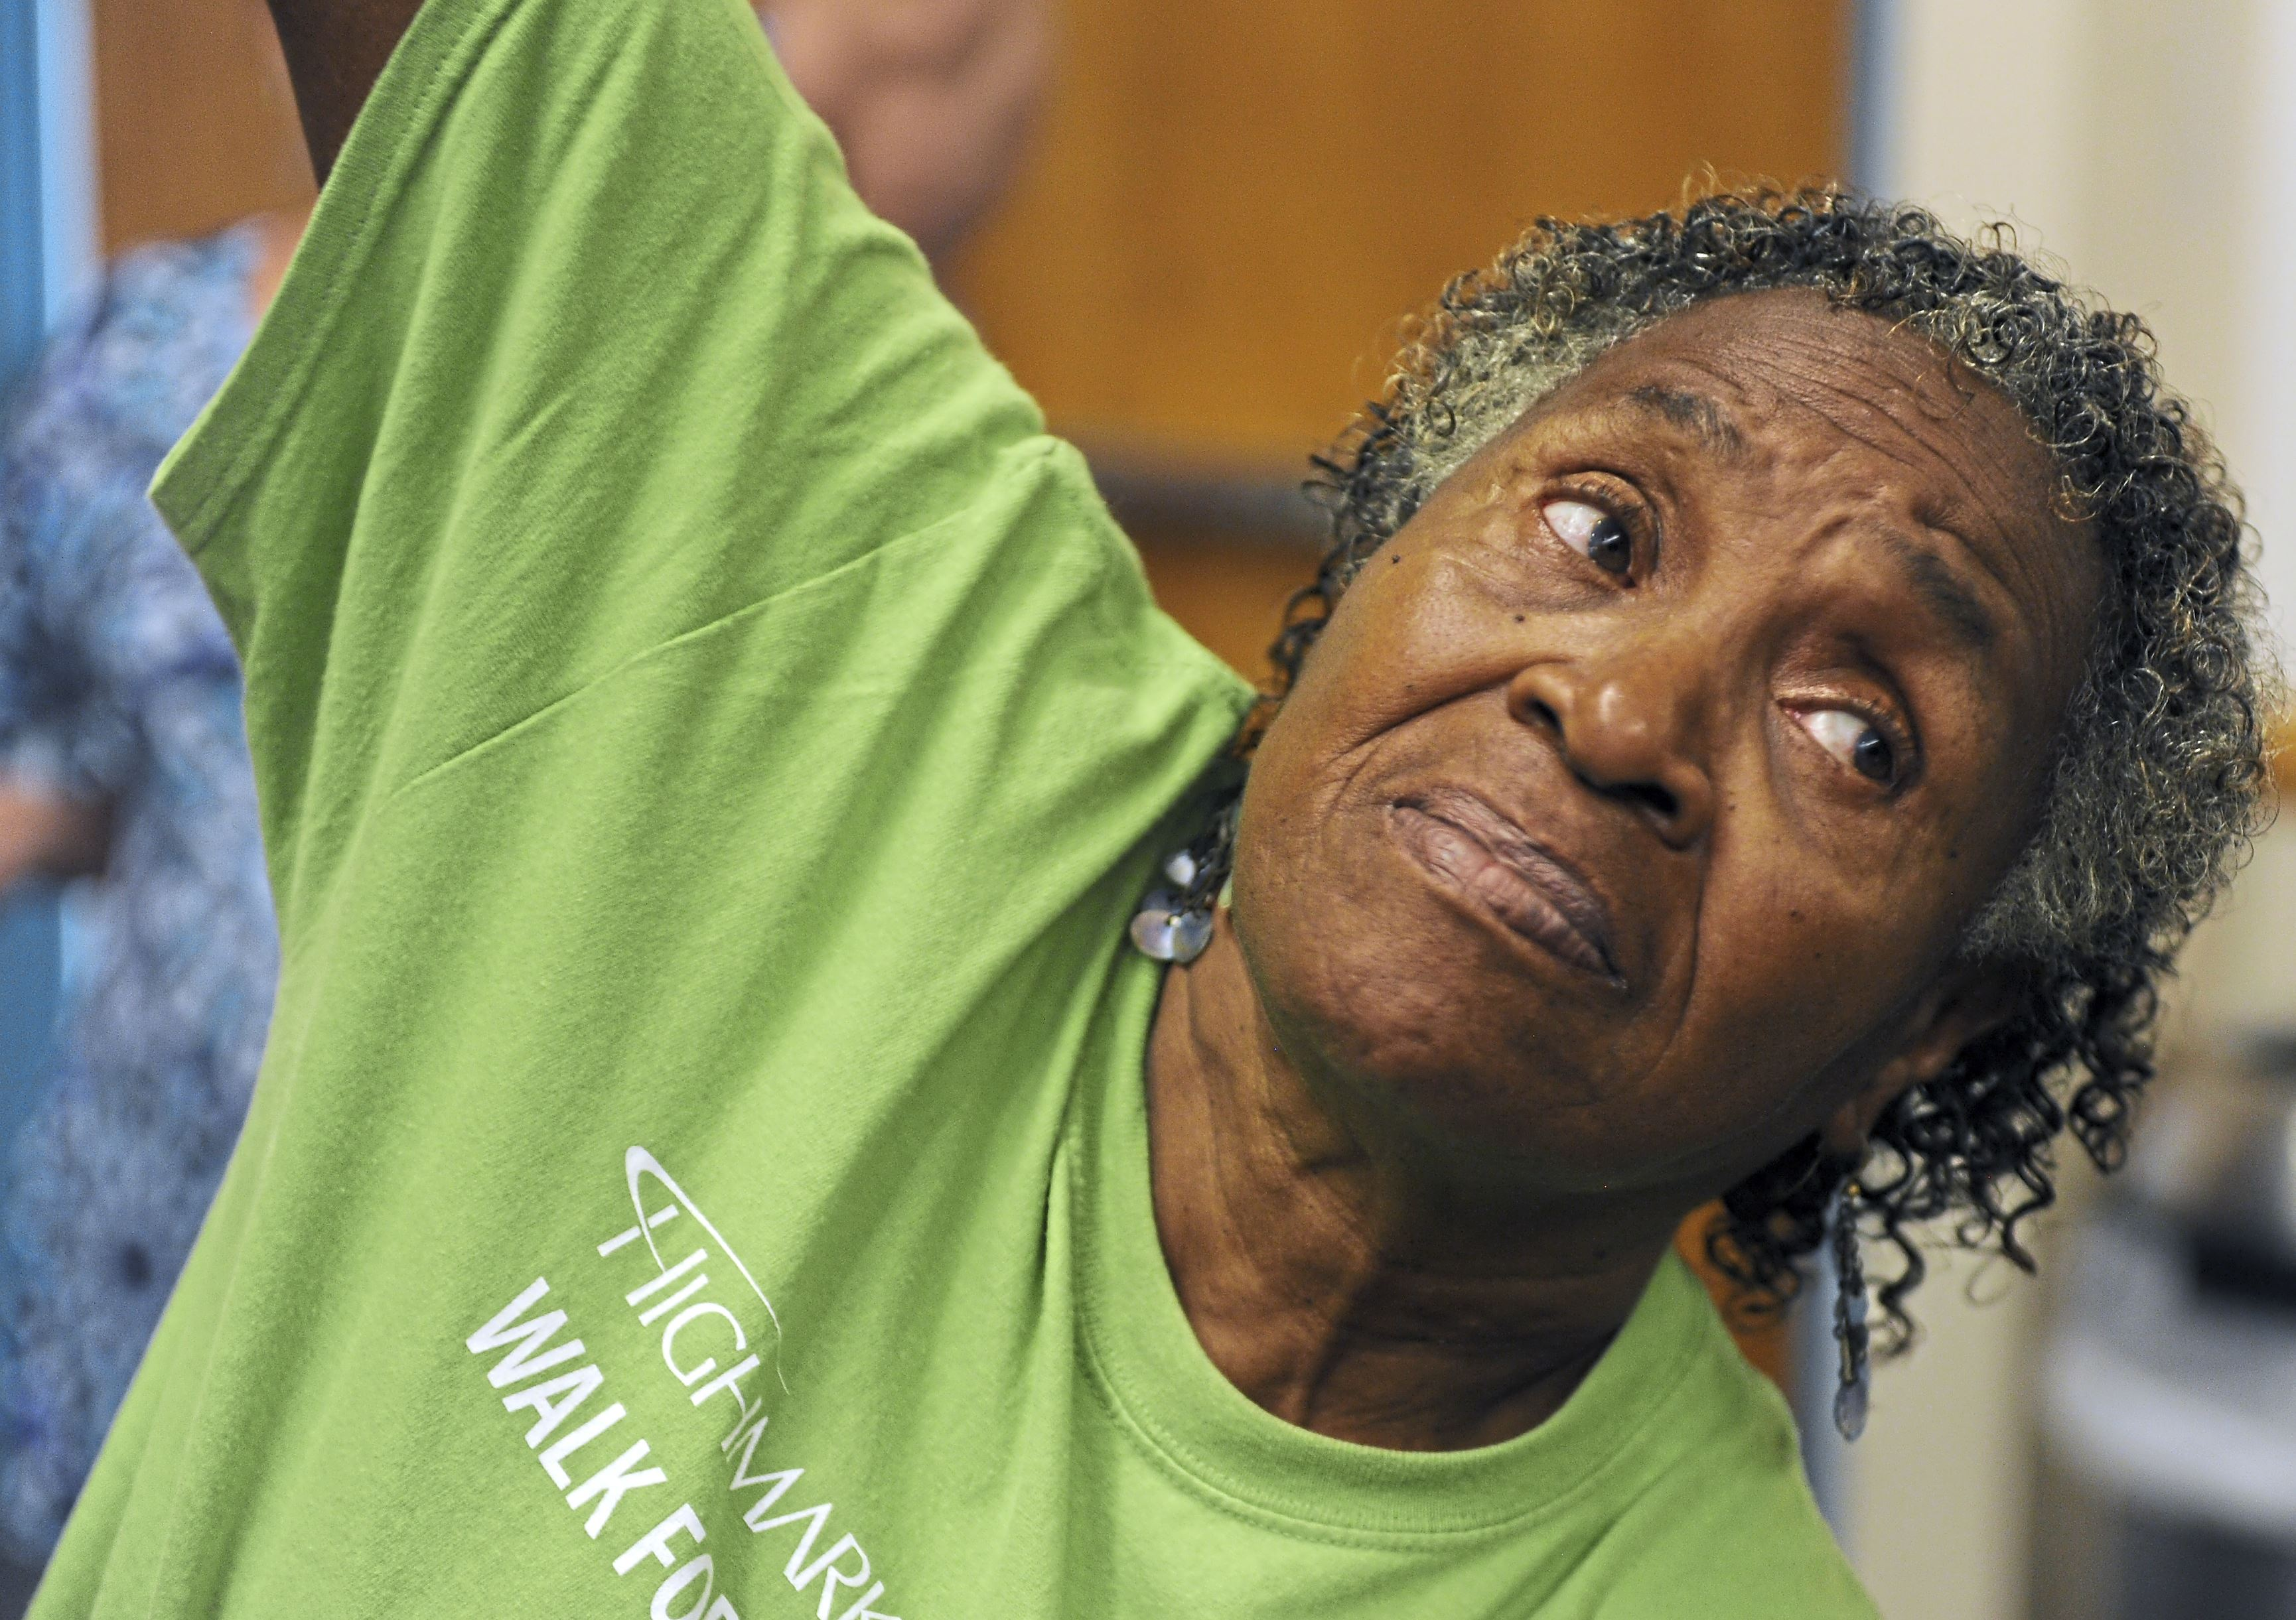 20170830ng-JCCYoga3-2  Joyce Hough of Oakland participates in the Silver Sneakers Yoga at the Jewish Community Center of Greater Pittsburgh in Squirrel Hill.